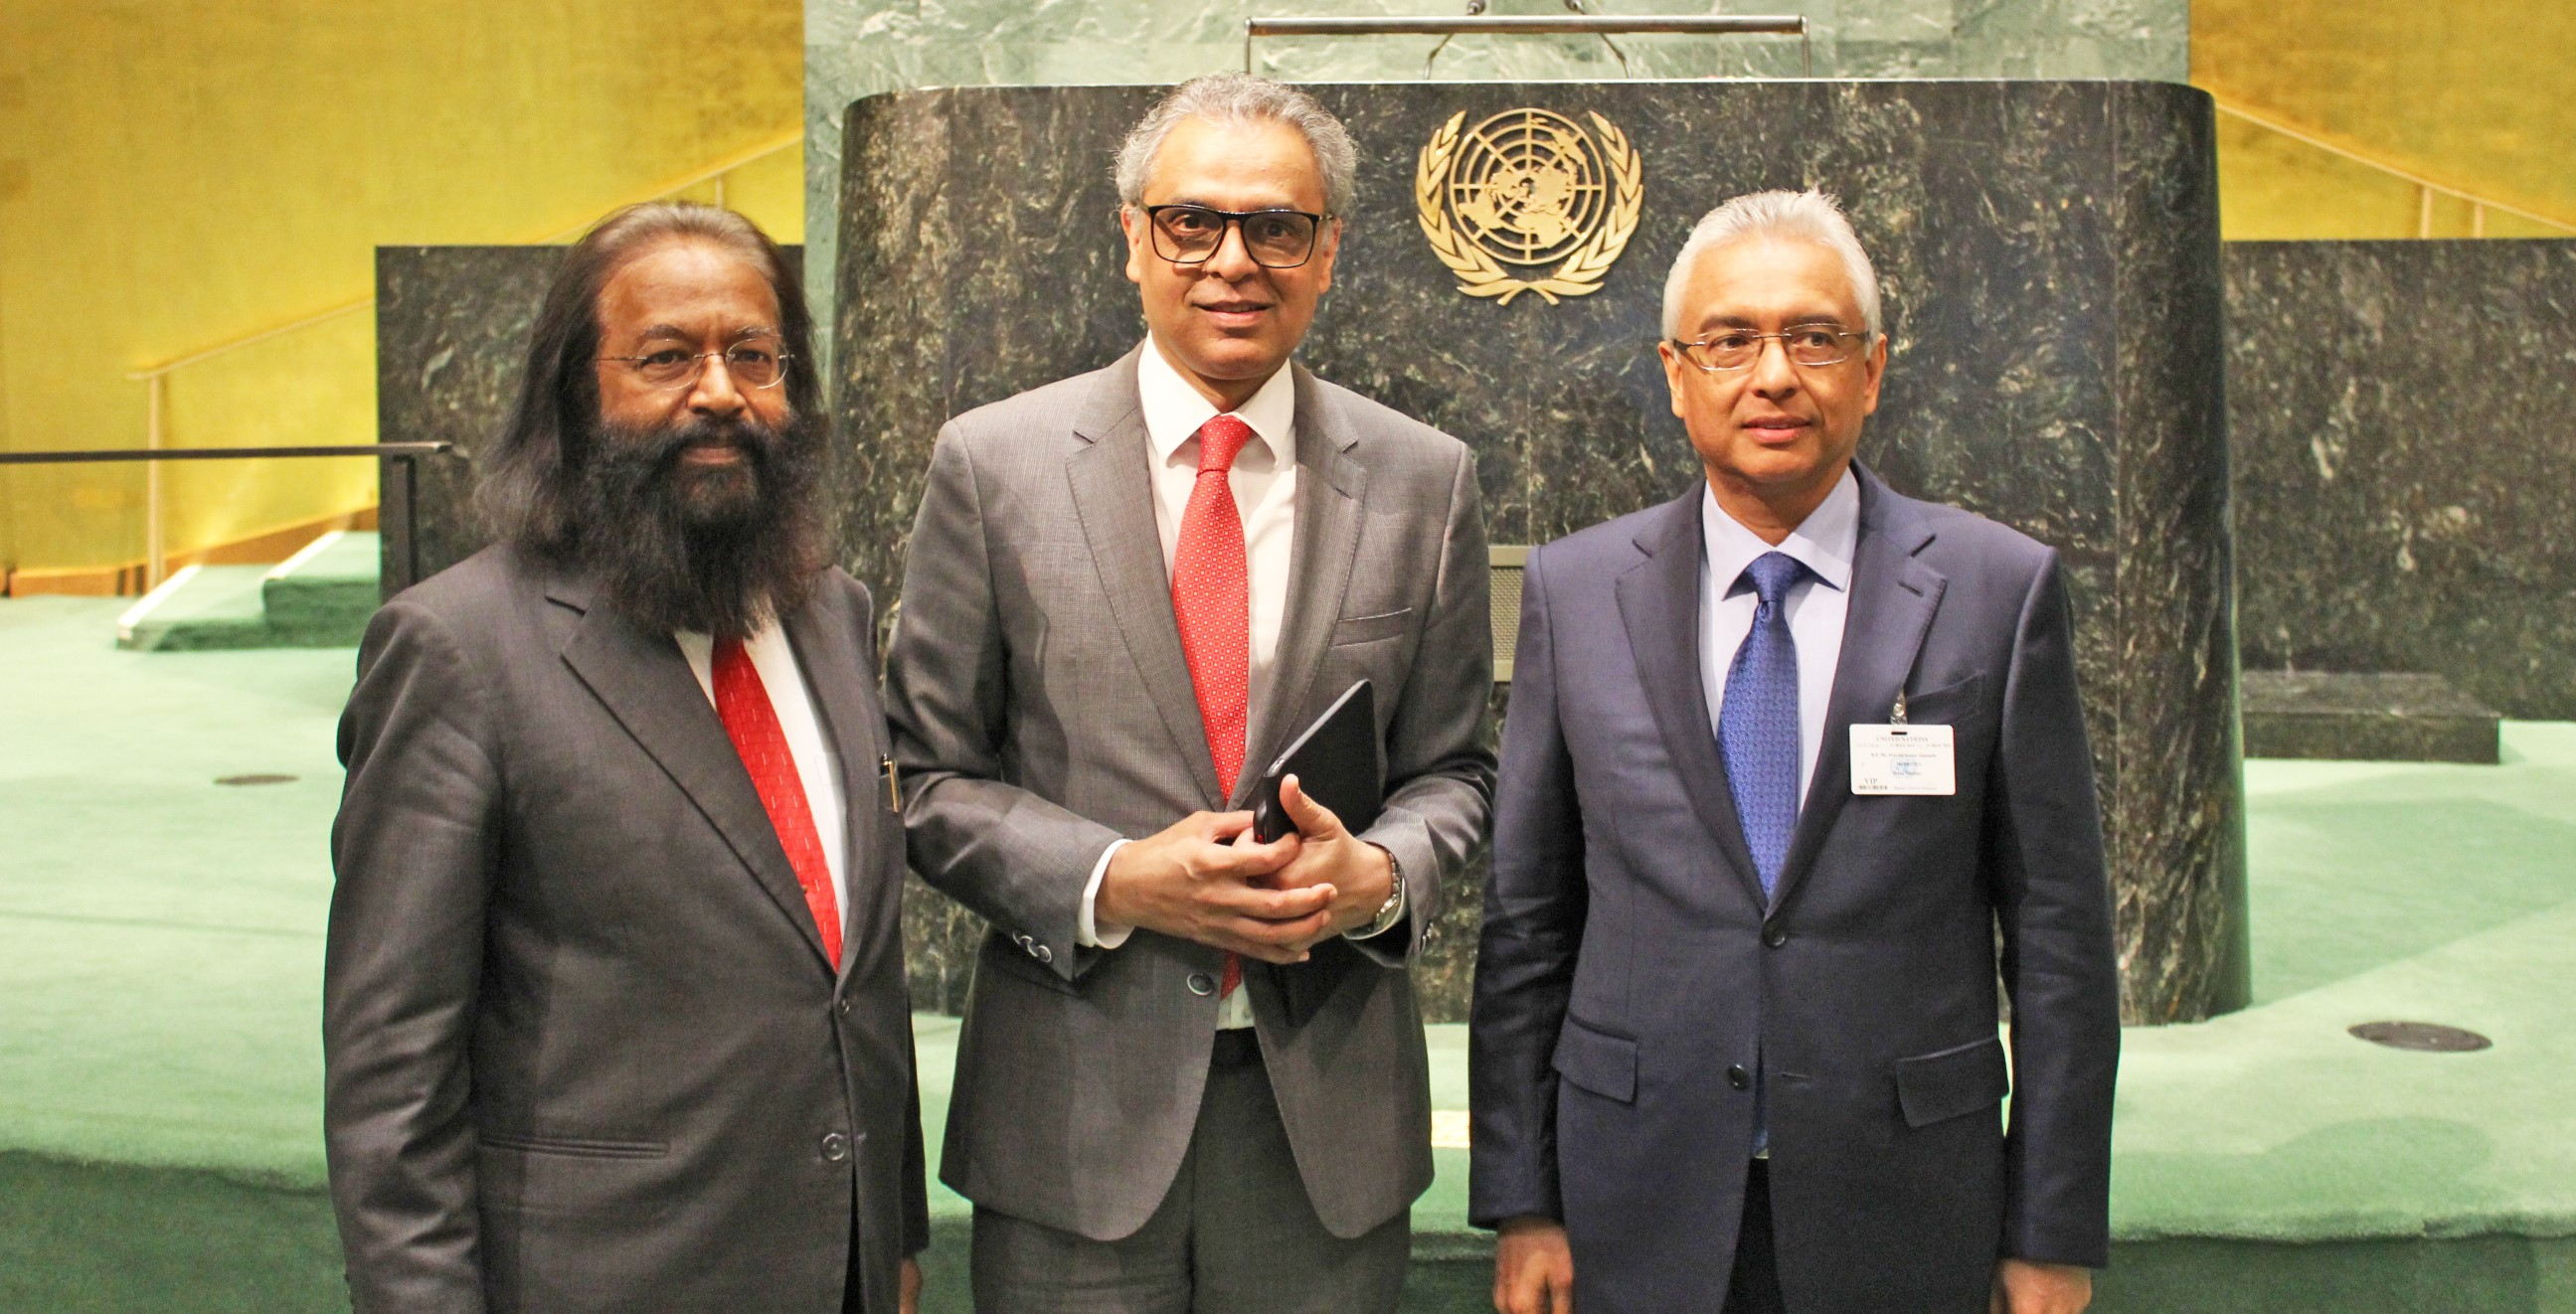 Amb. Syed Akbaruddin with Prime Minister Pravind Kumar Jugnauth and Amb. Jagdish Dharamchand Koonjul <br> of Mauritius at the UN General Assembly